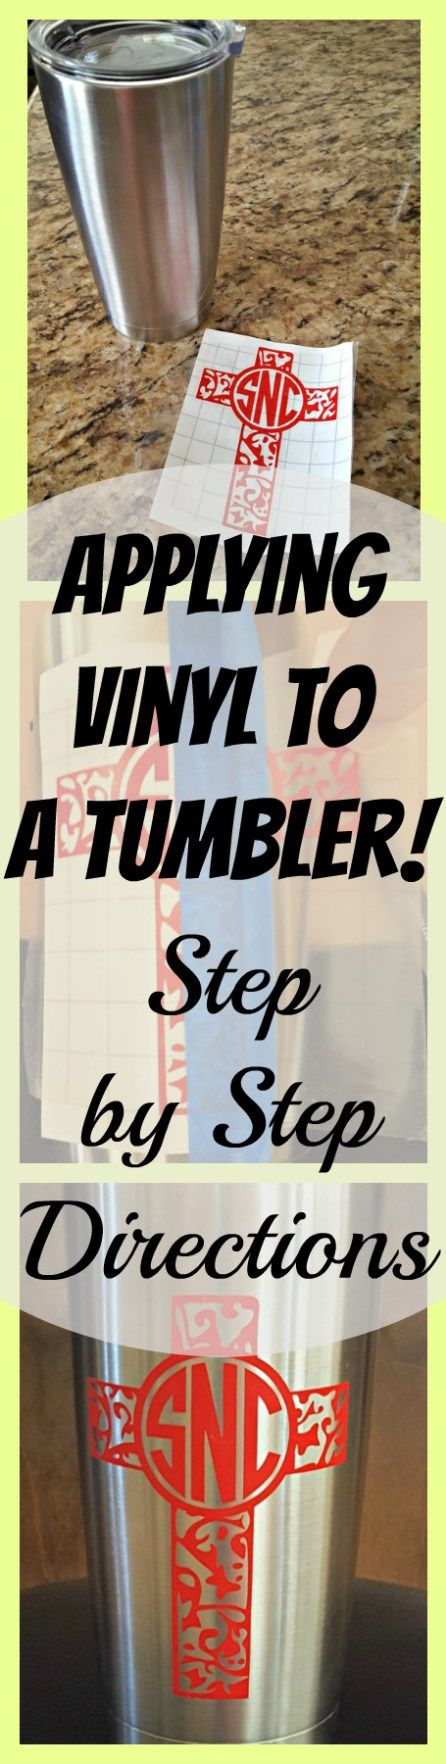 Unique Silhouette Vinyl Ideas On Pinterest Silhouette Vinyl - Custom vinyl decal application instructions pdfvinyl decor boutique simple things you should know and do before